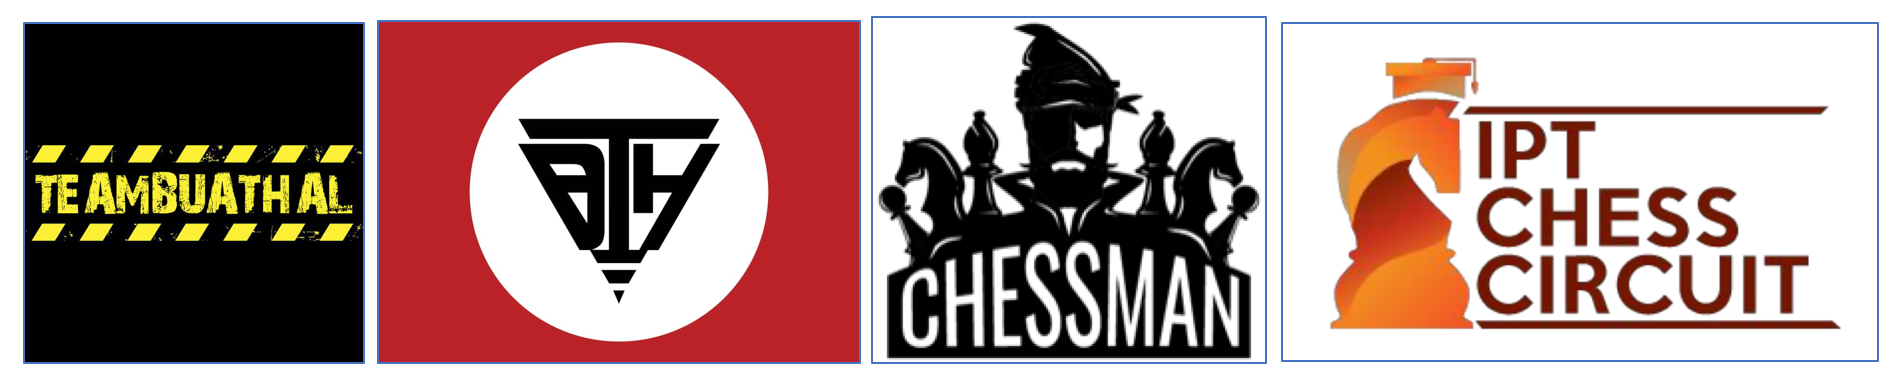 U1900 IPT Series FIDE RAPID Chess Championship 2019-2020